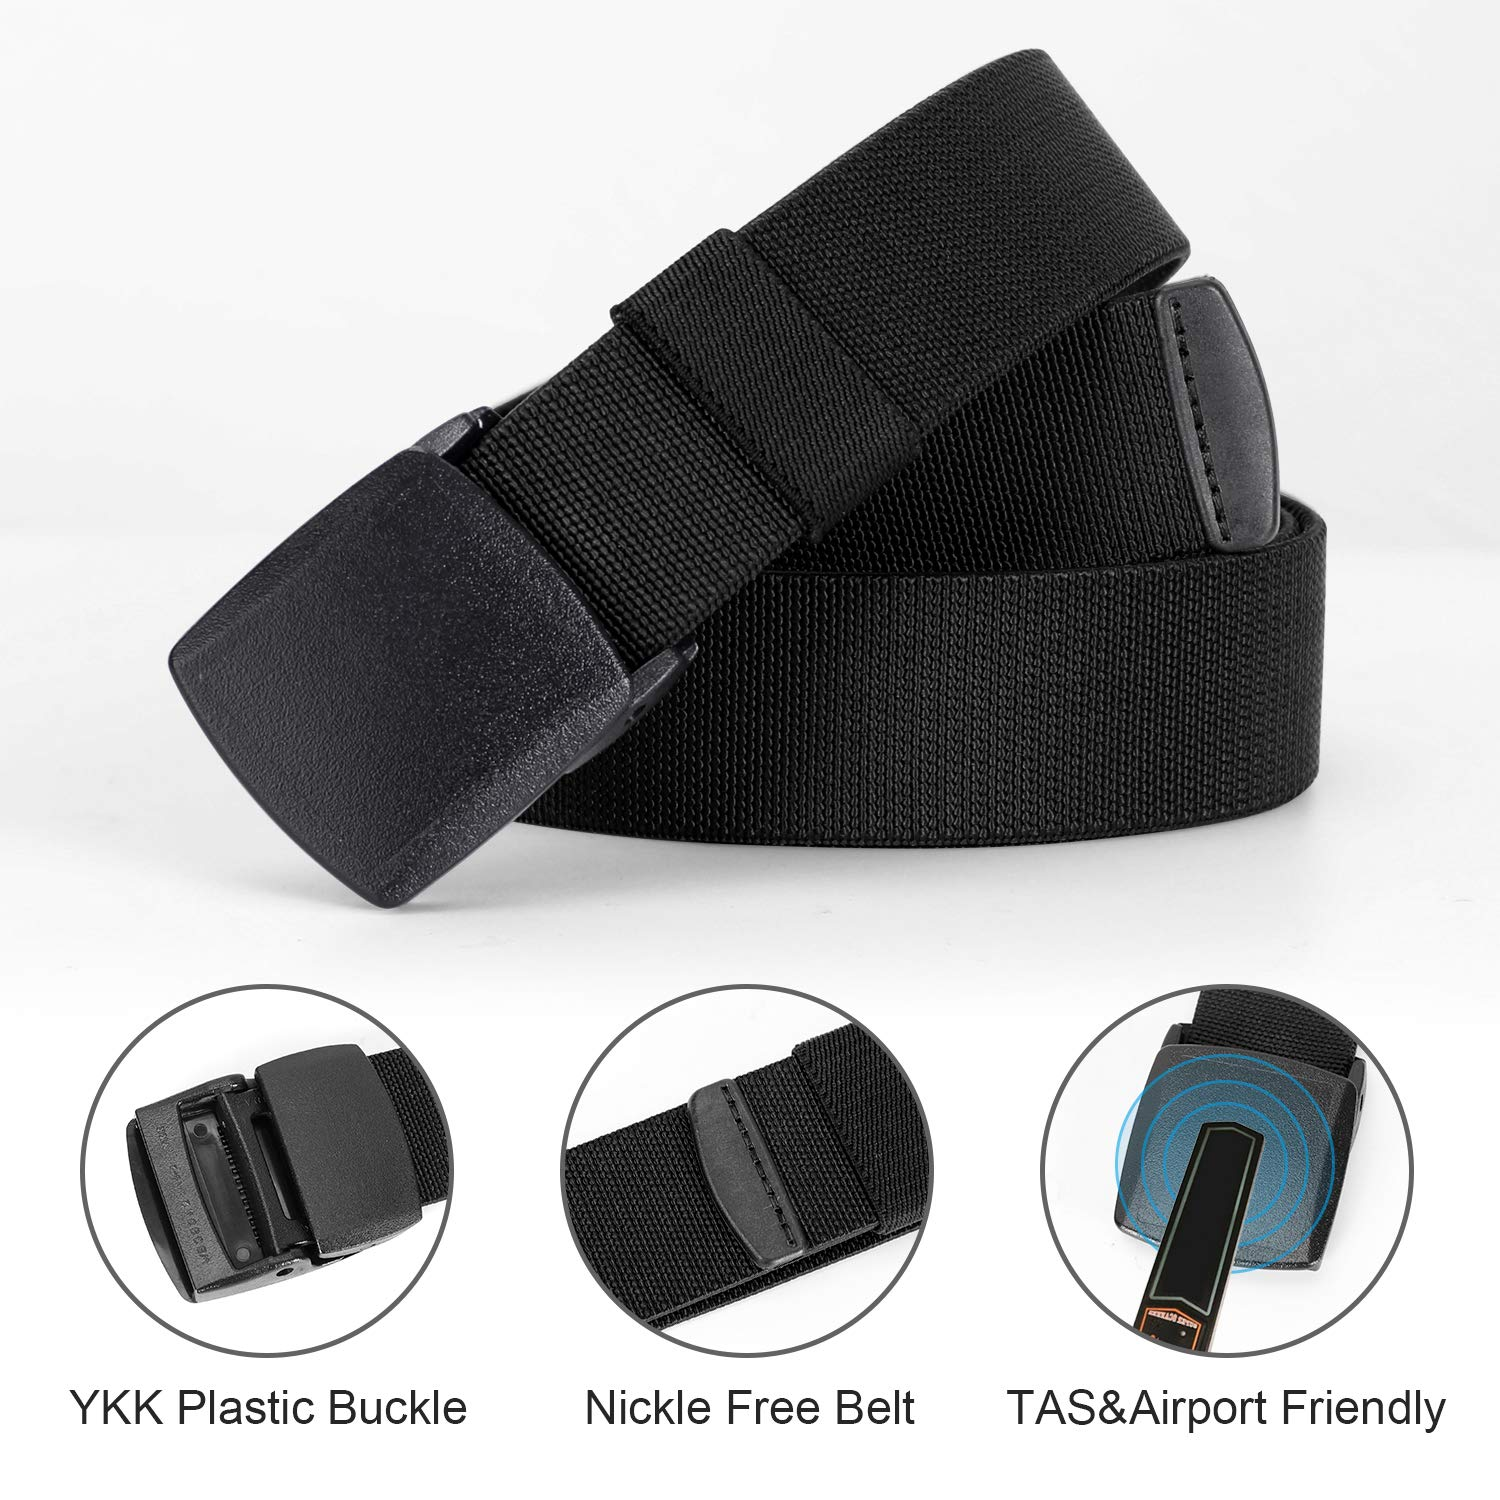 Whippy 2 Pack Elastic Stretch Belt for Men, Nickle Free Hiking Nylon Belt in YKK Buckle up to 51in